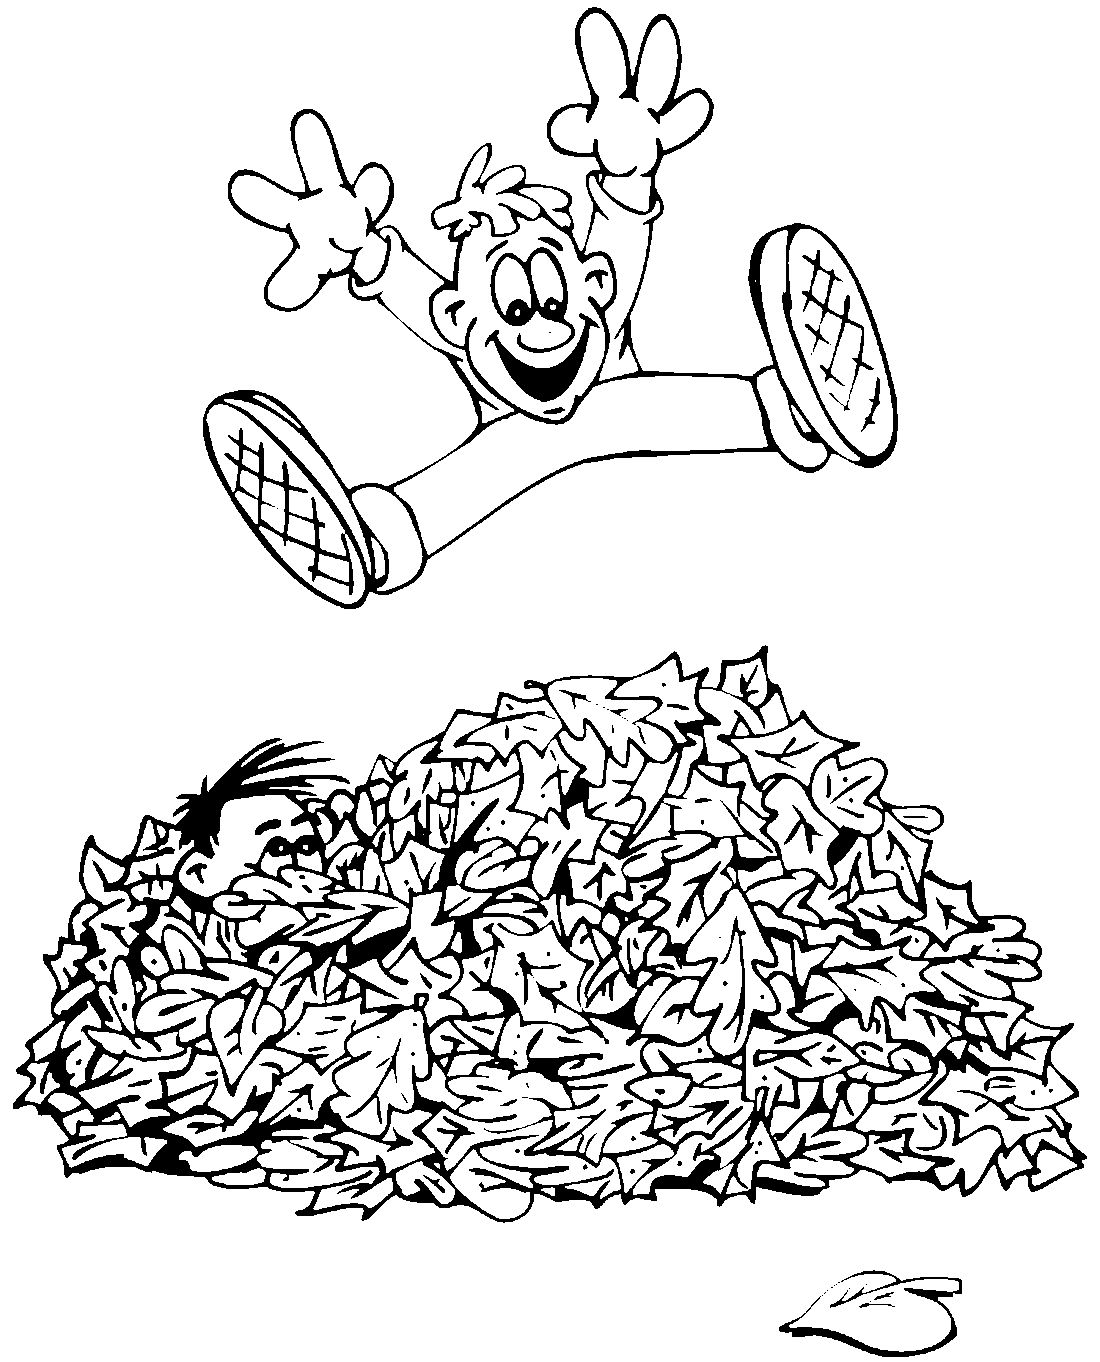 Jump in the leaves clipart black and white freeuse stock Pin by Nanuchia2000 on გააფერადე   Fall coloring ... freeuse stock